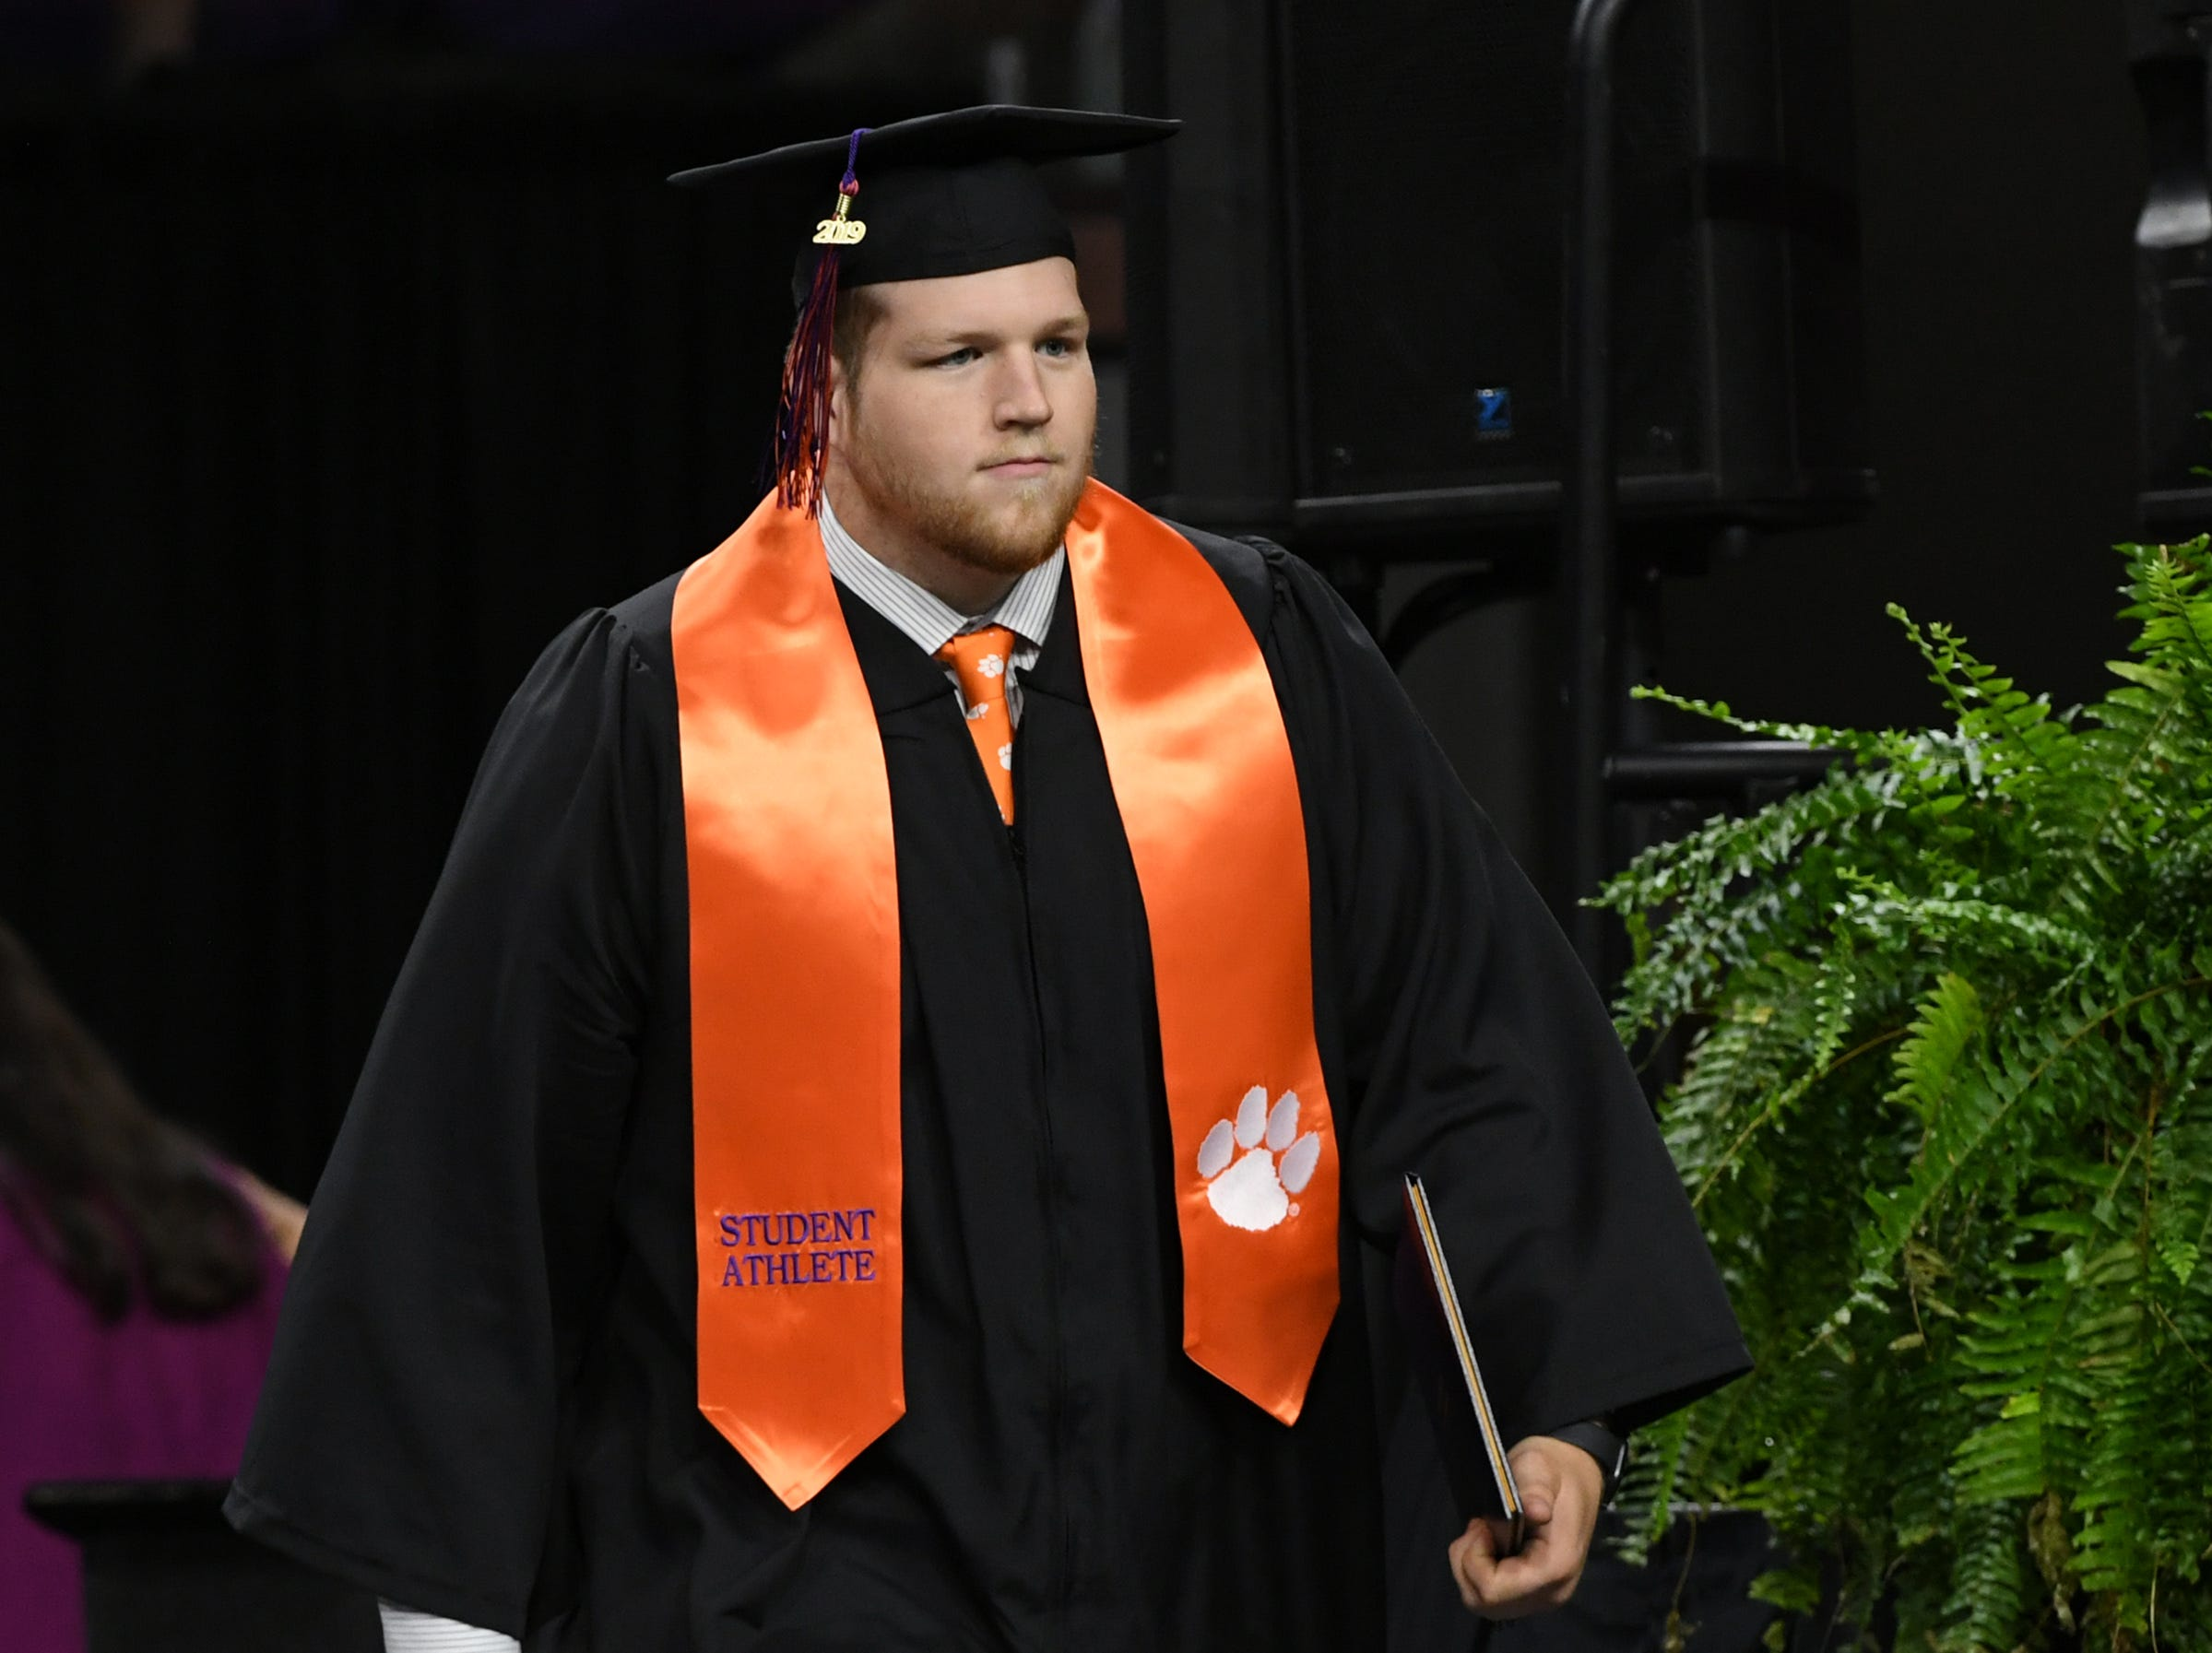 Logan Tisch gets his bachelor of science in plant and environmental sciences during Clemson University commencement ceremonies in Littlejohn Coliseum in Clemson Friday, May 10, 2019.